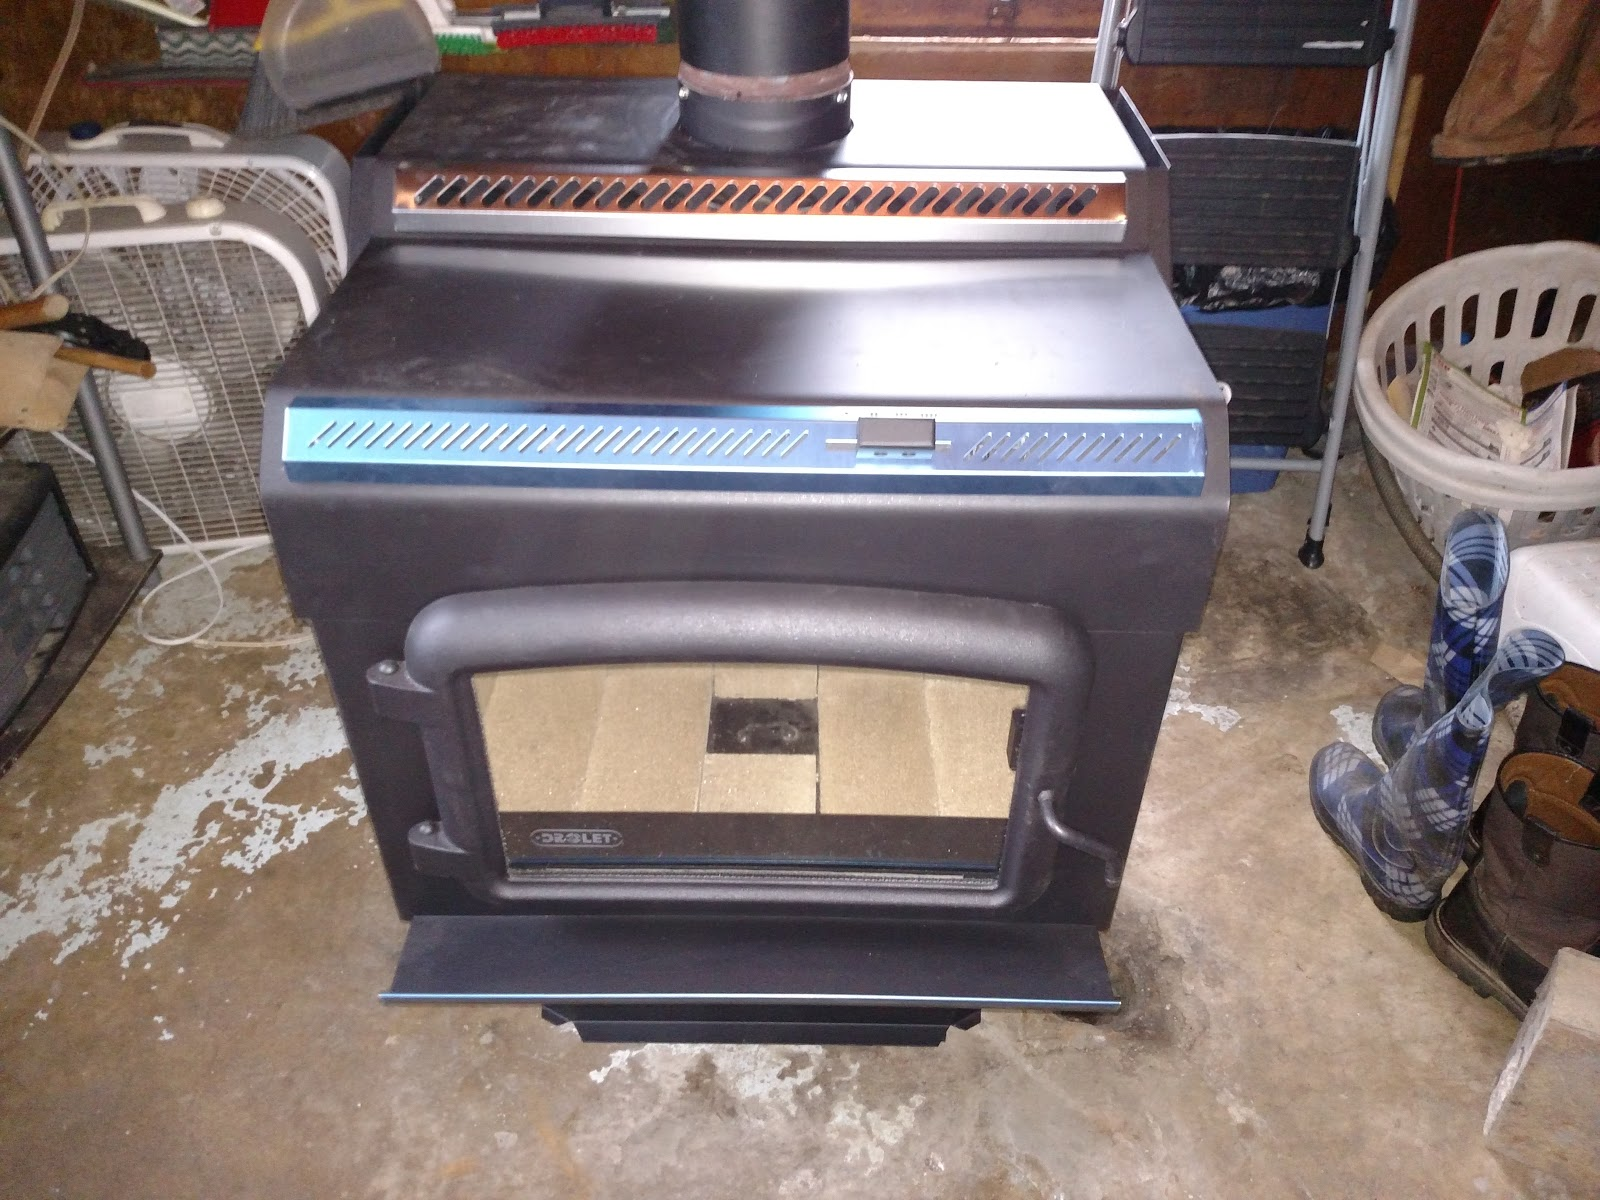 Muddy Geek: Drolet HT-2000 Extra Large Wood Stove